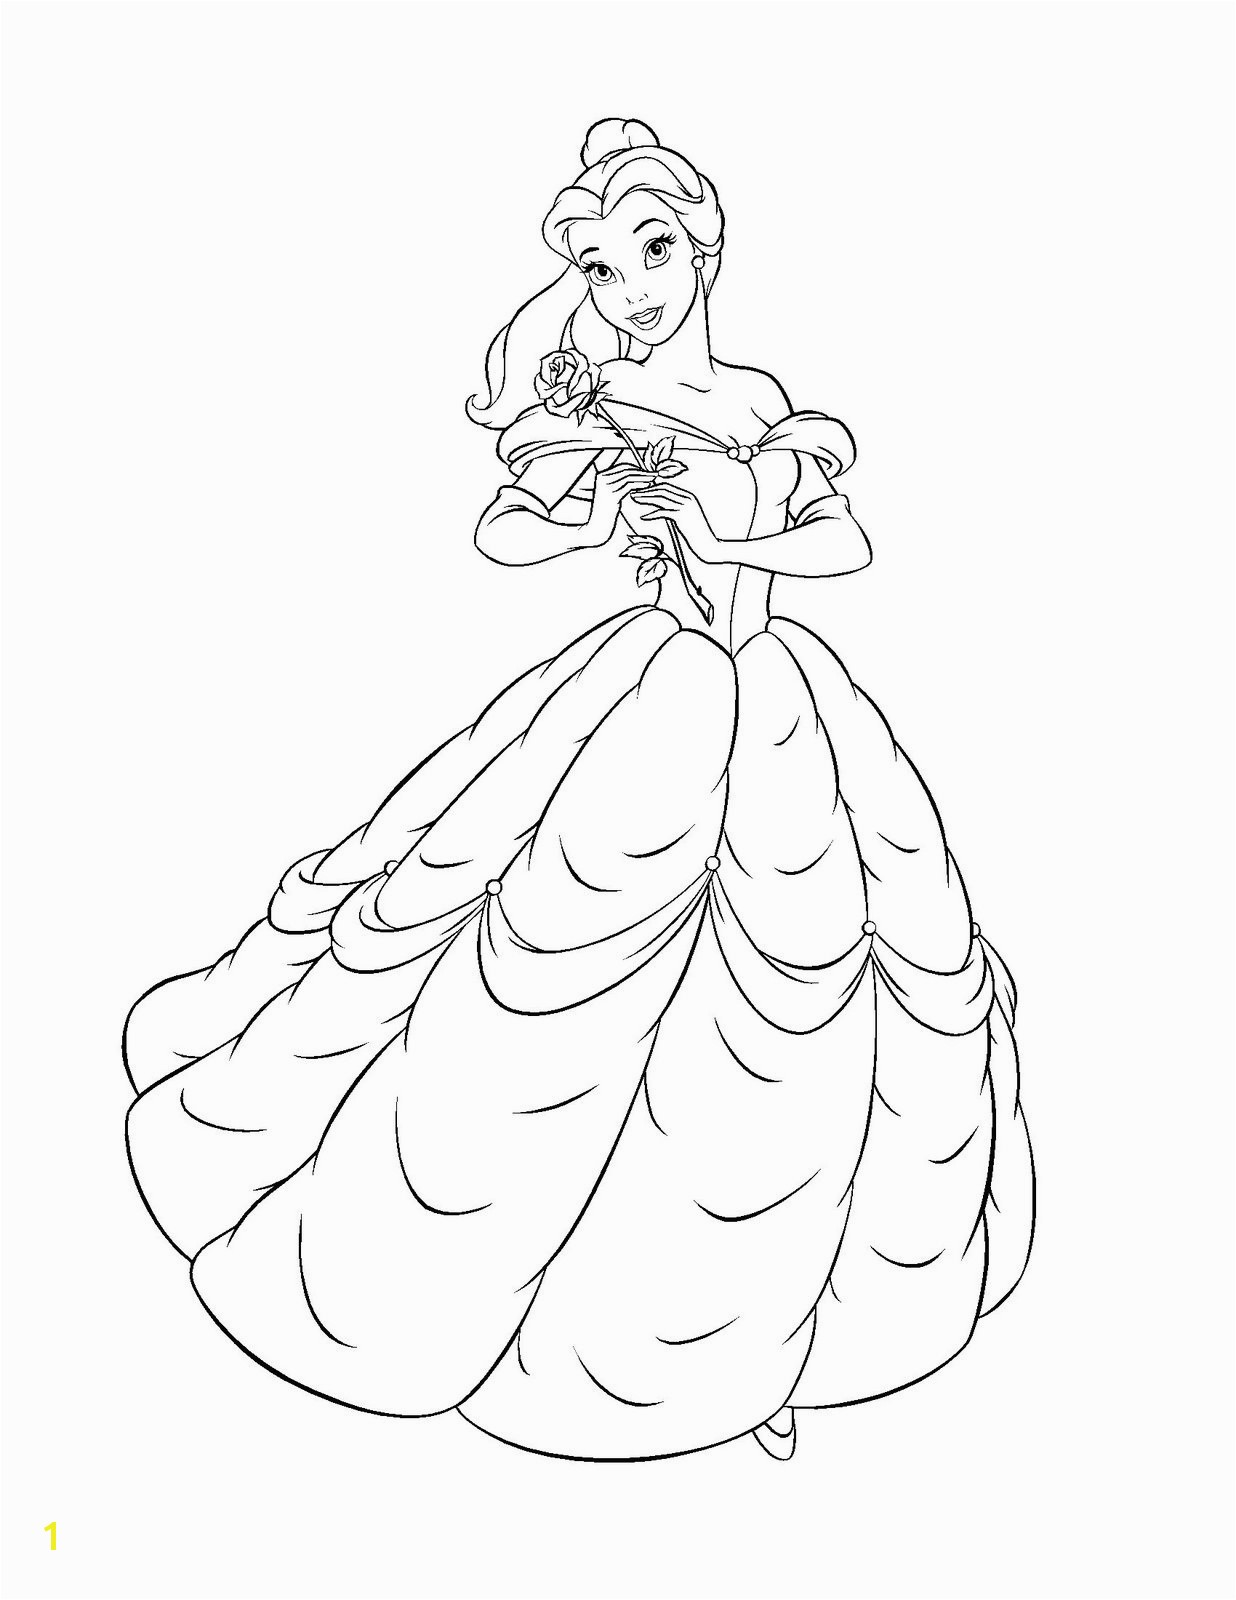 Coloring Pages Belle Princess Free Printable Belle Coloring Pages for Kids